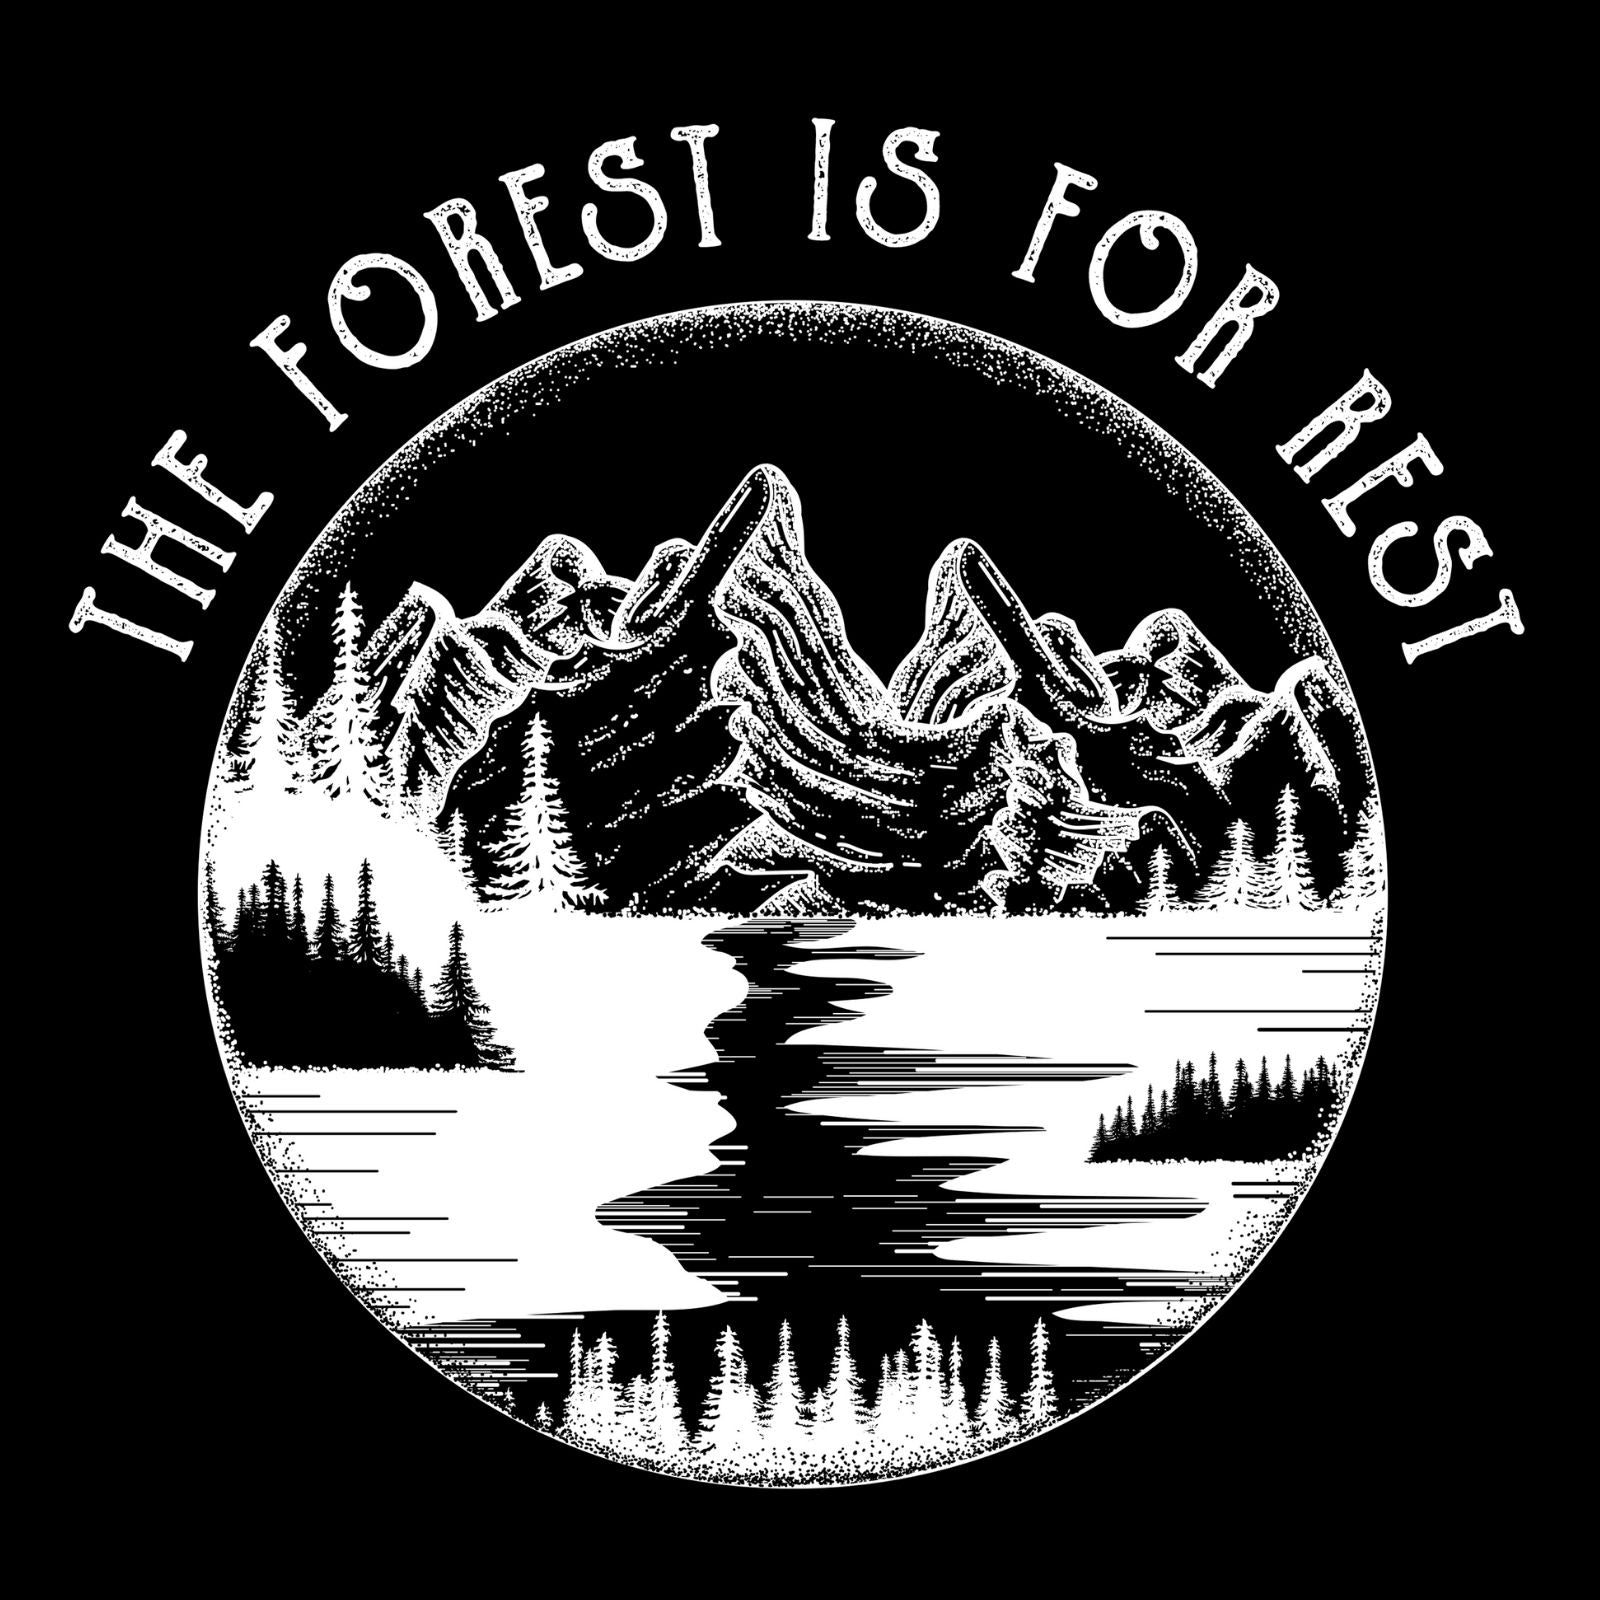 The Forest Is For Rest - Bastard Graphics